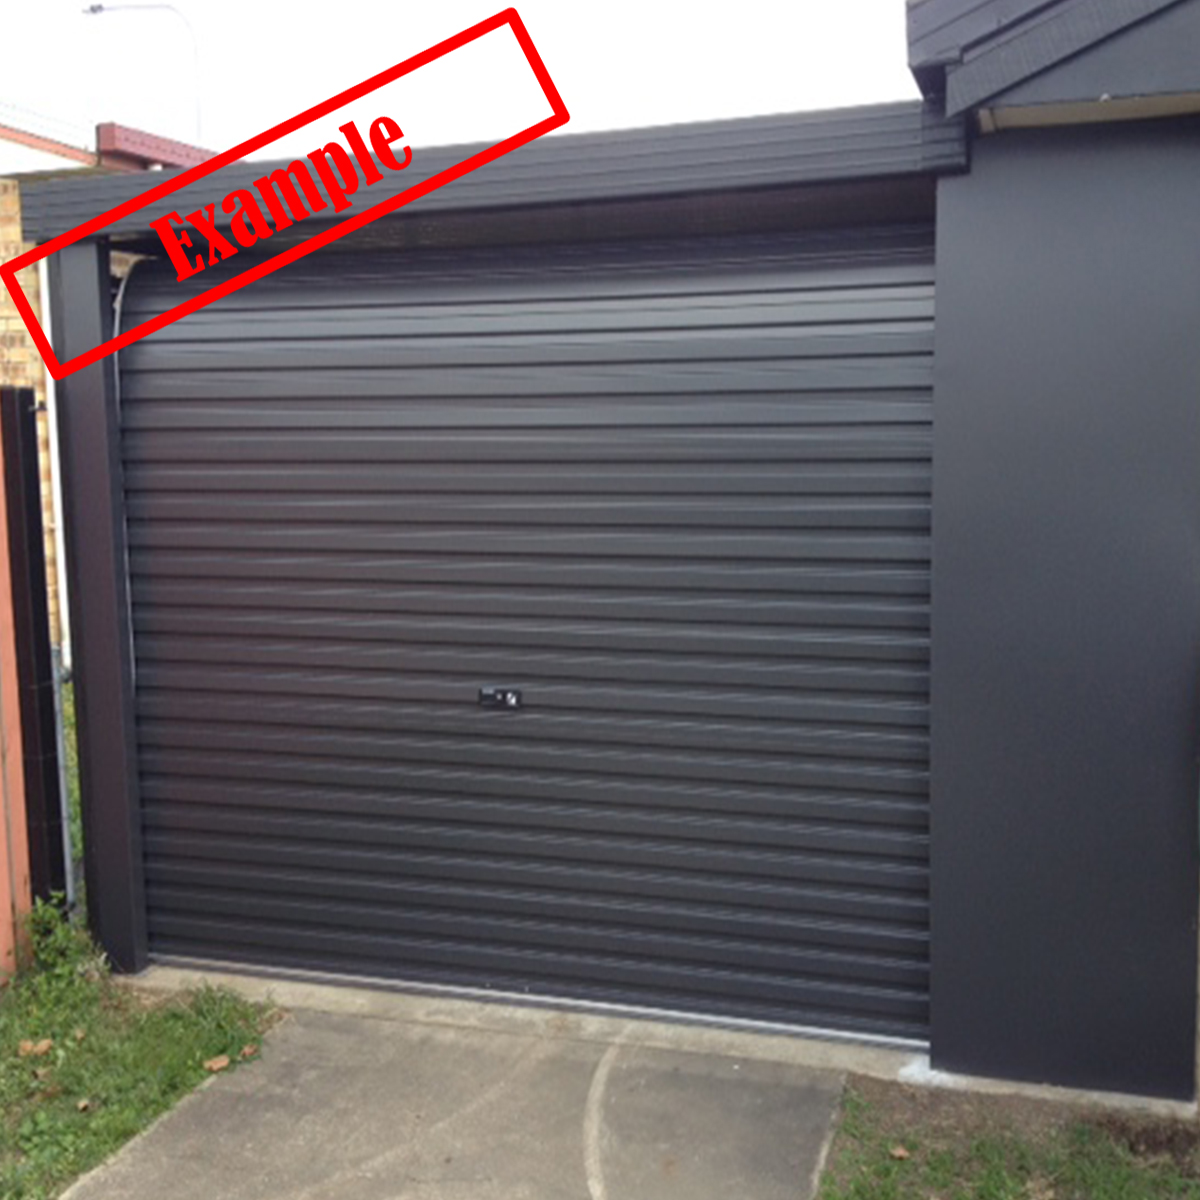 A Series Steel Line Garage Roller Door Monument Colour 2400mm X